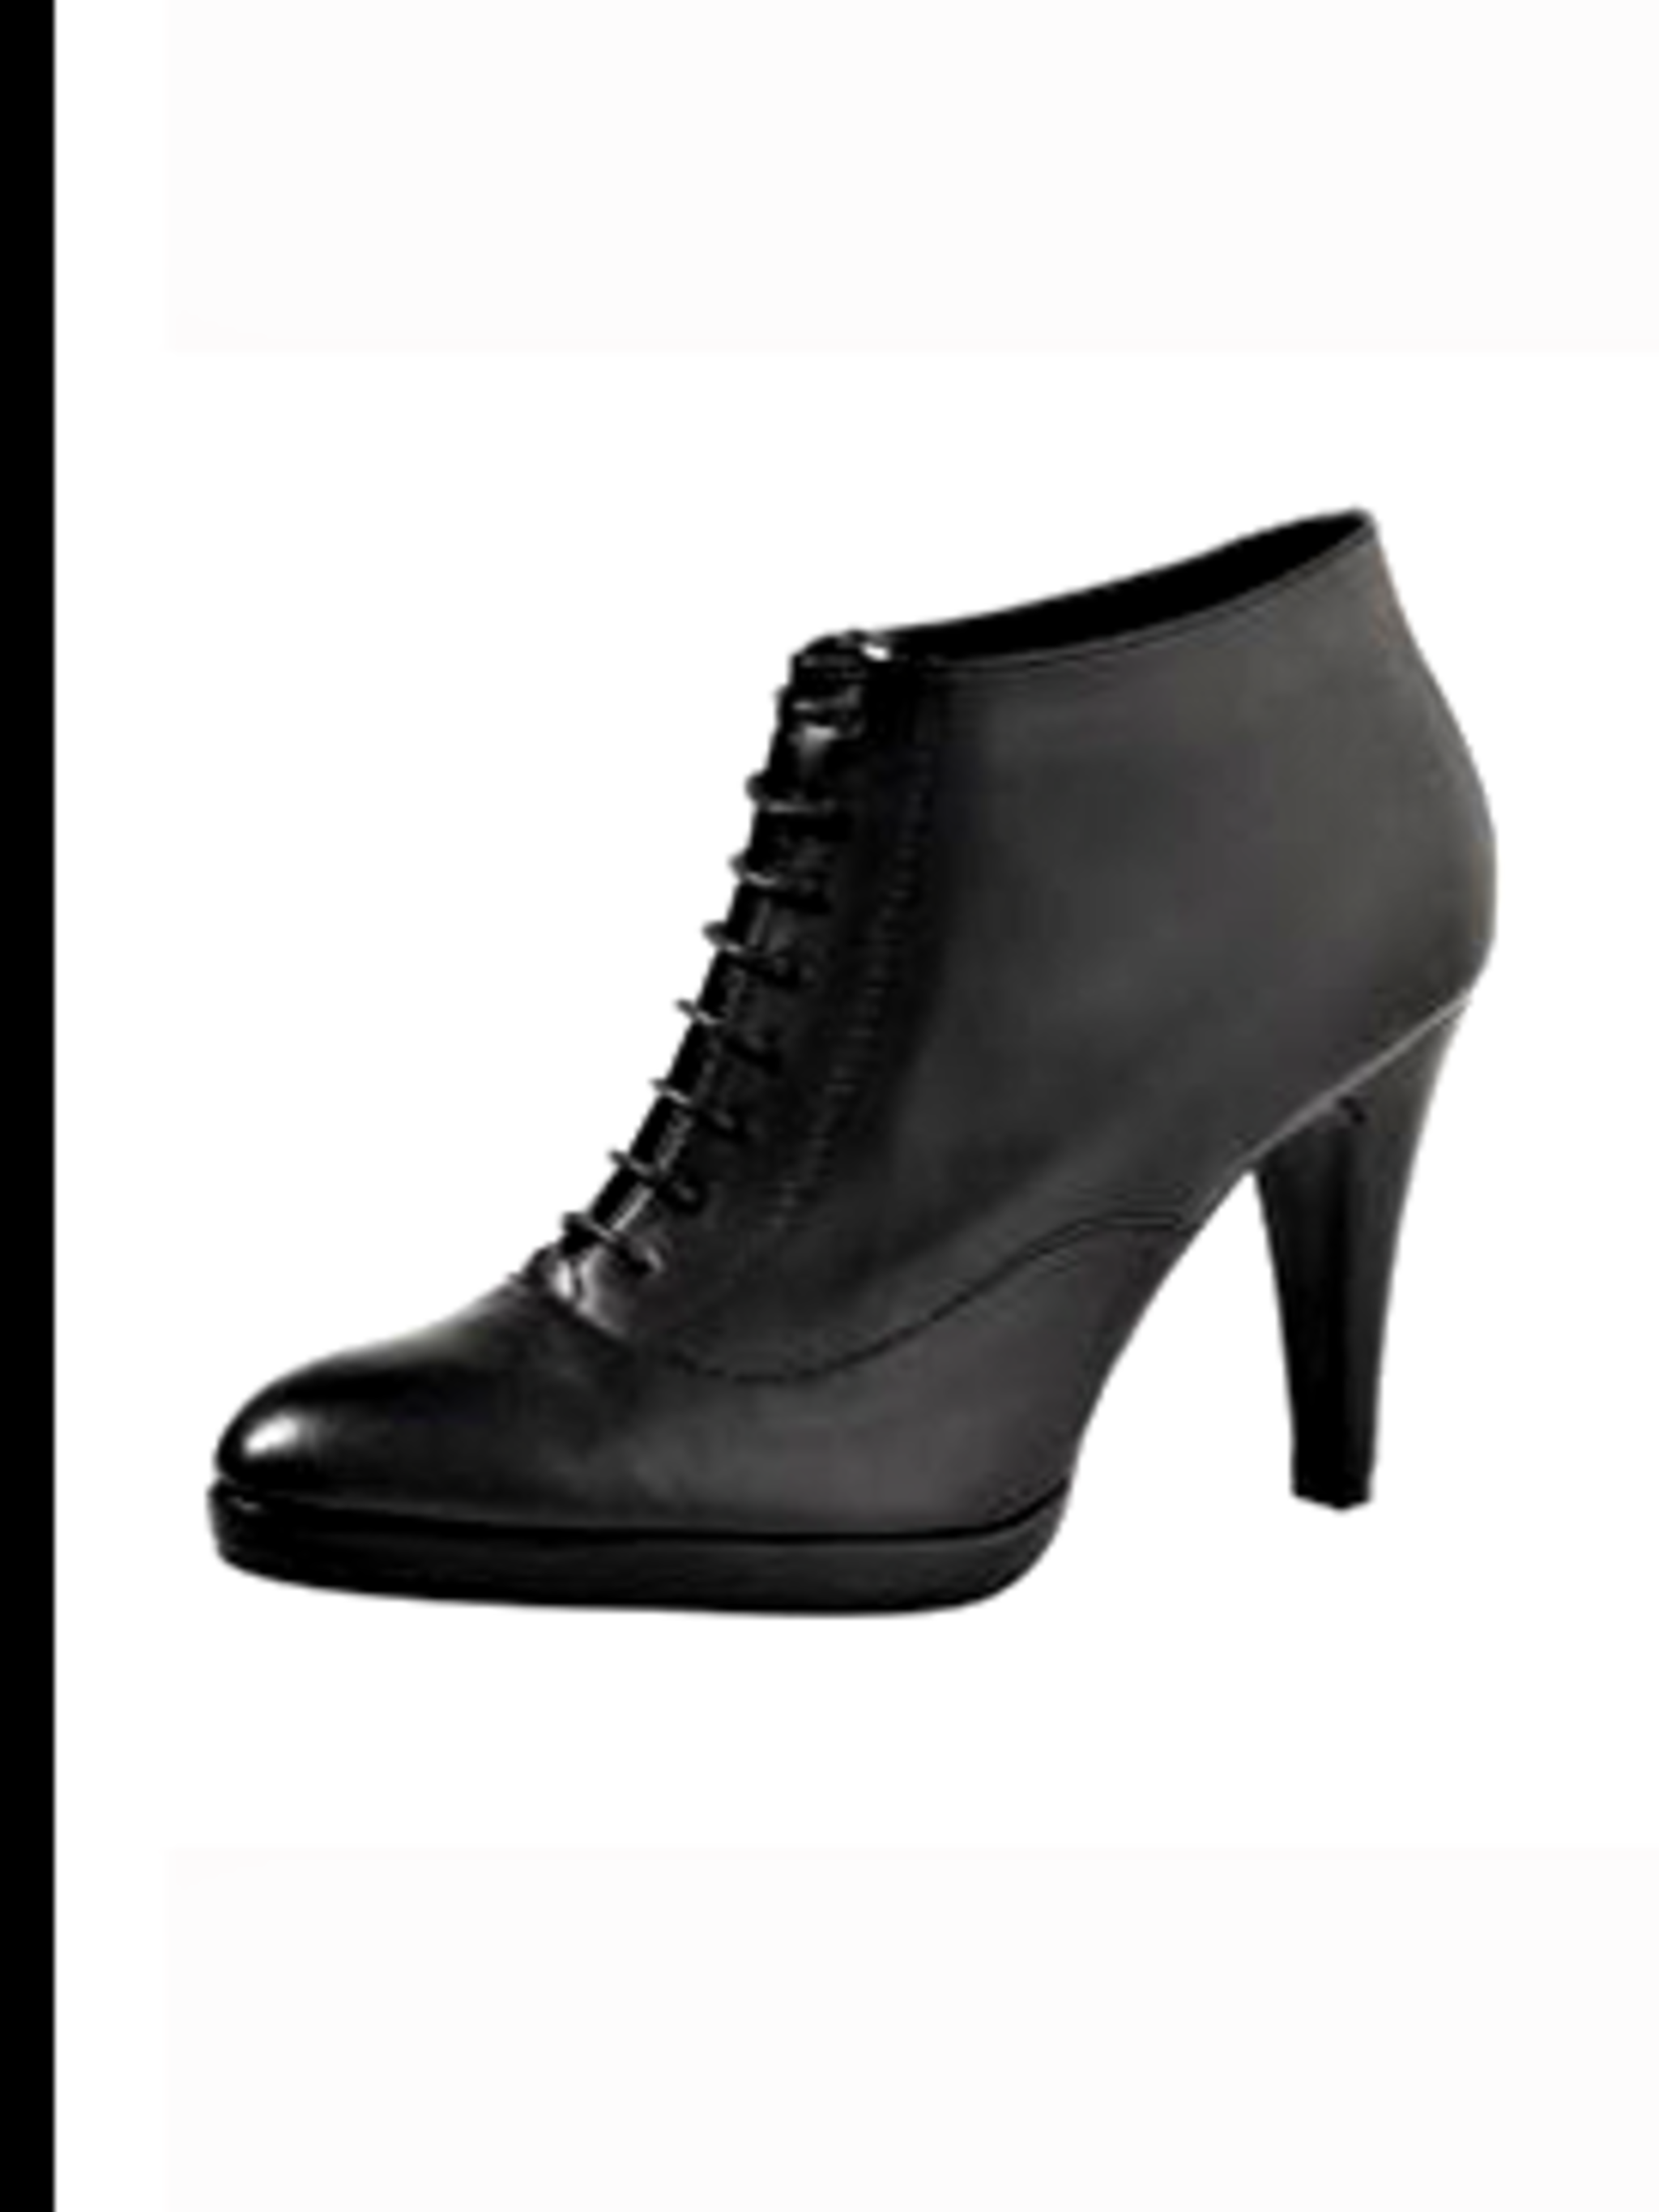 <p>Lace-up ankle boots, £34.99 from H&M, for stockists call 020 7323 2211</p>